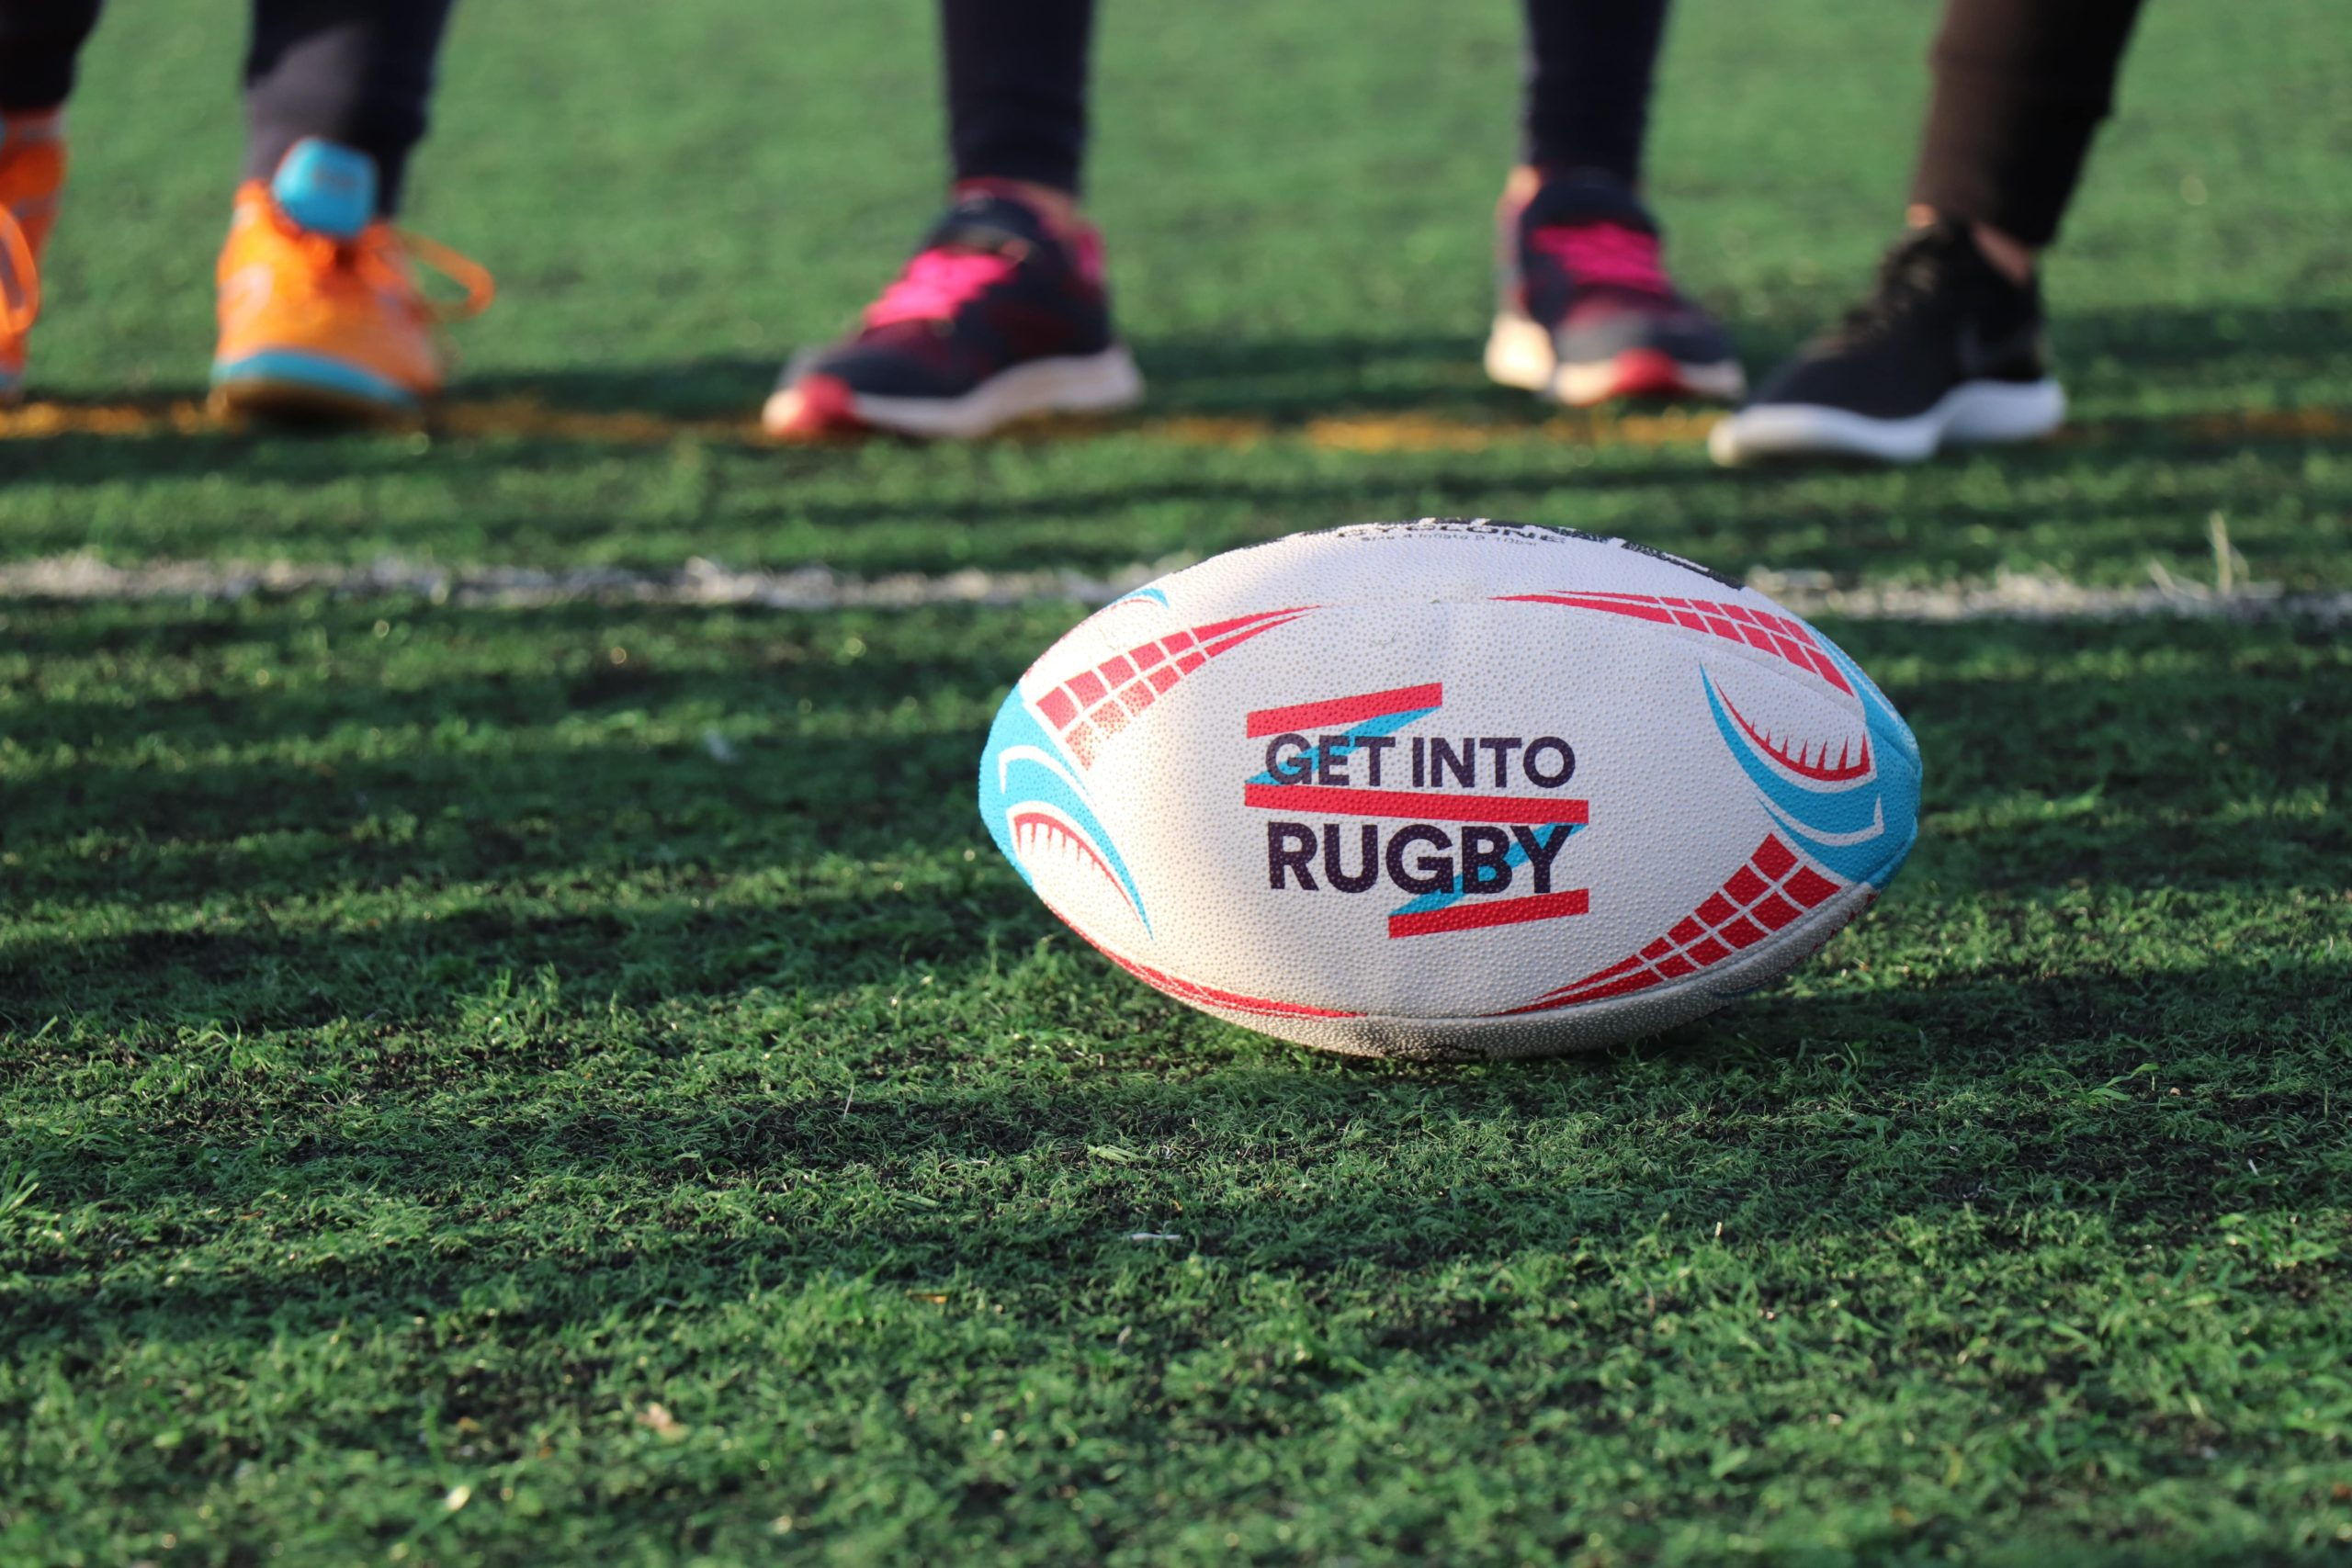 Get-into-Rugby-min-2